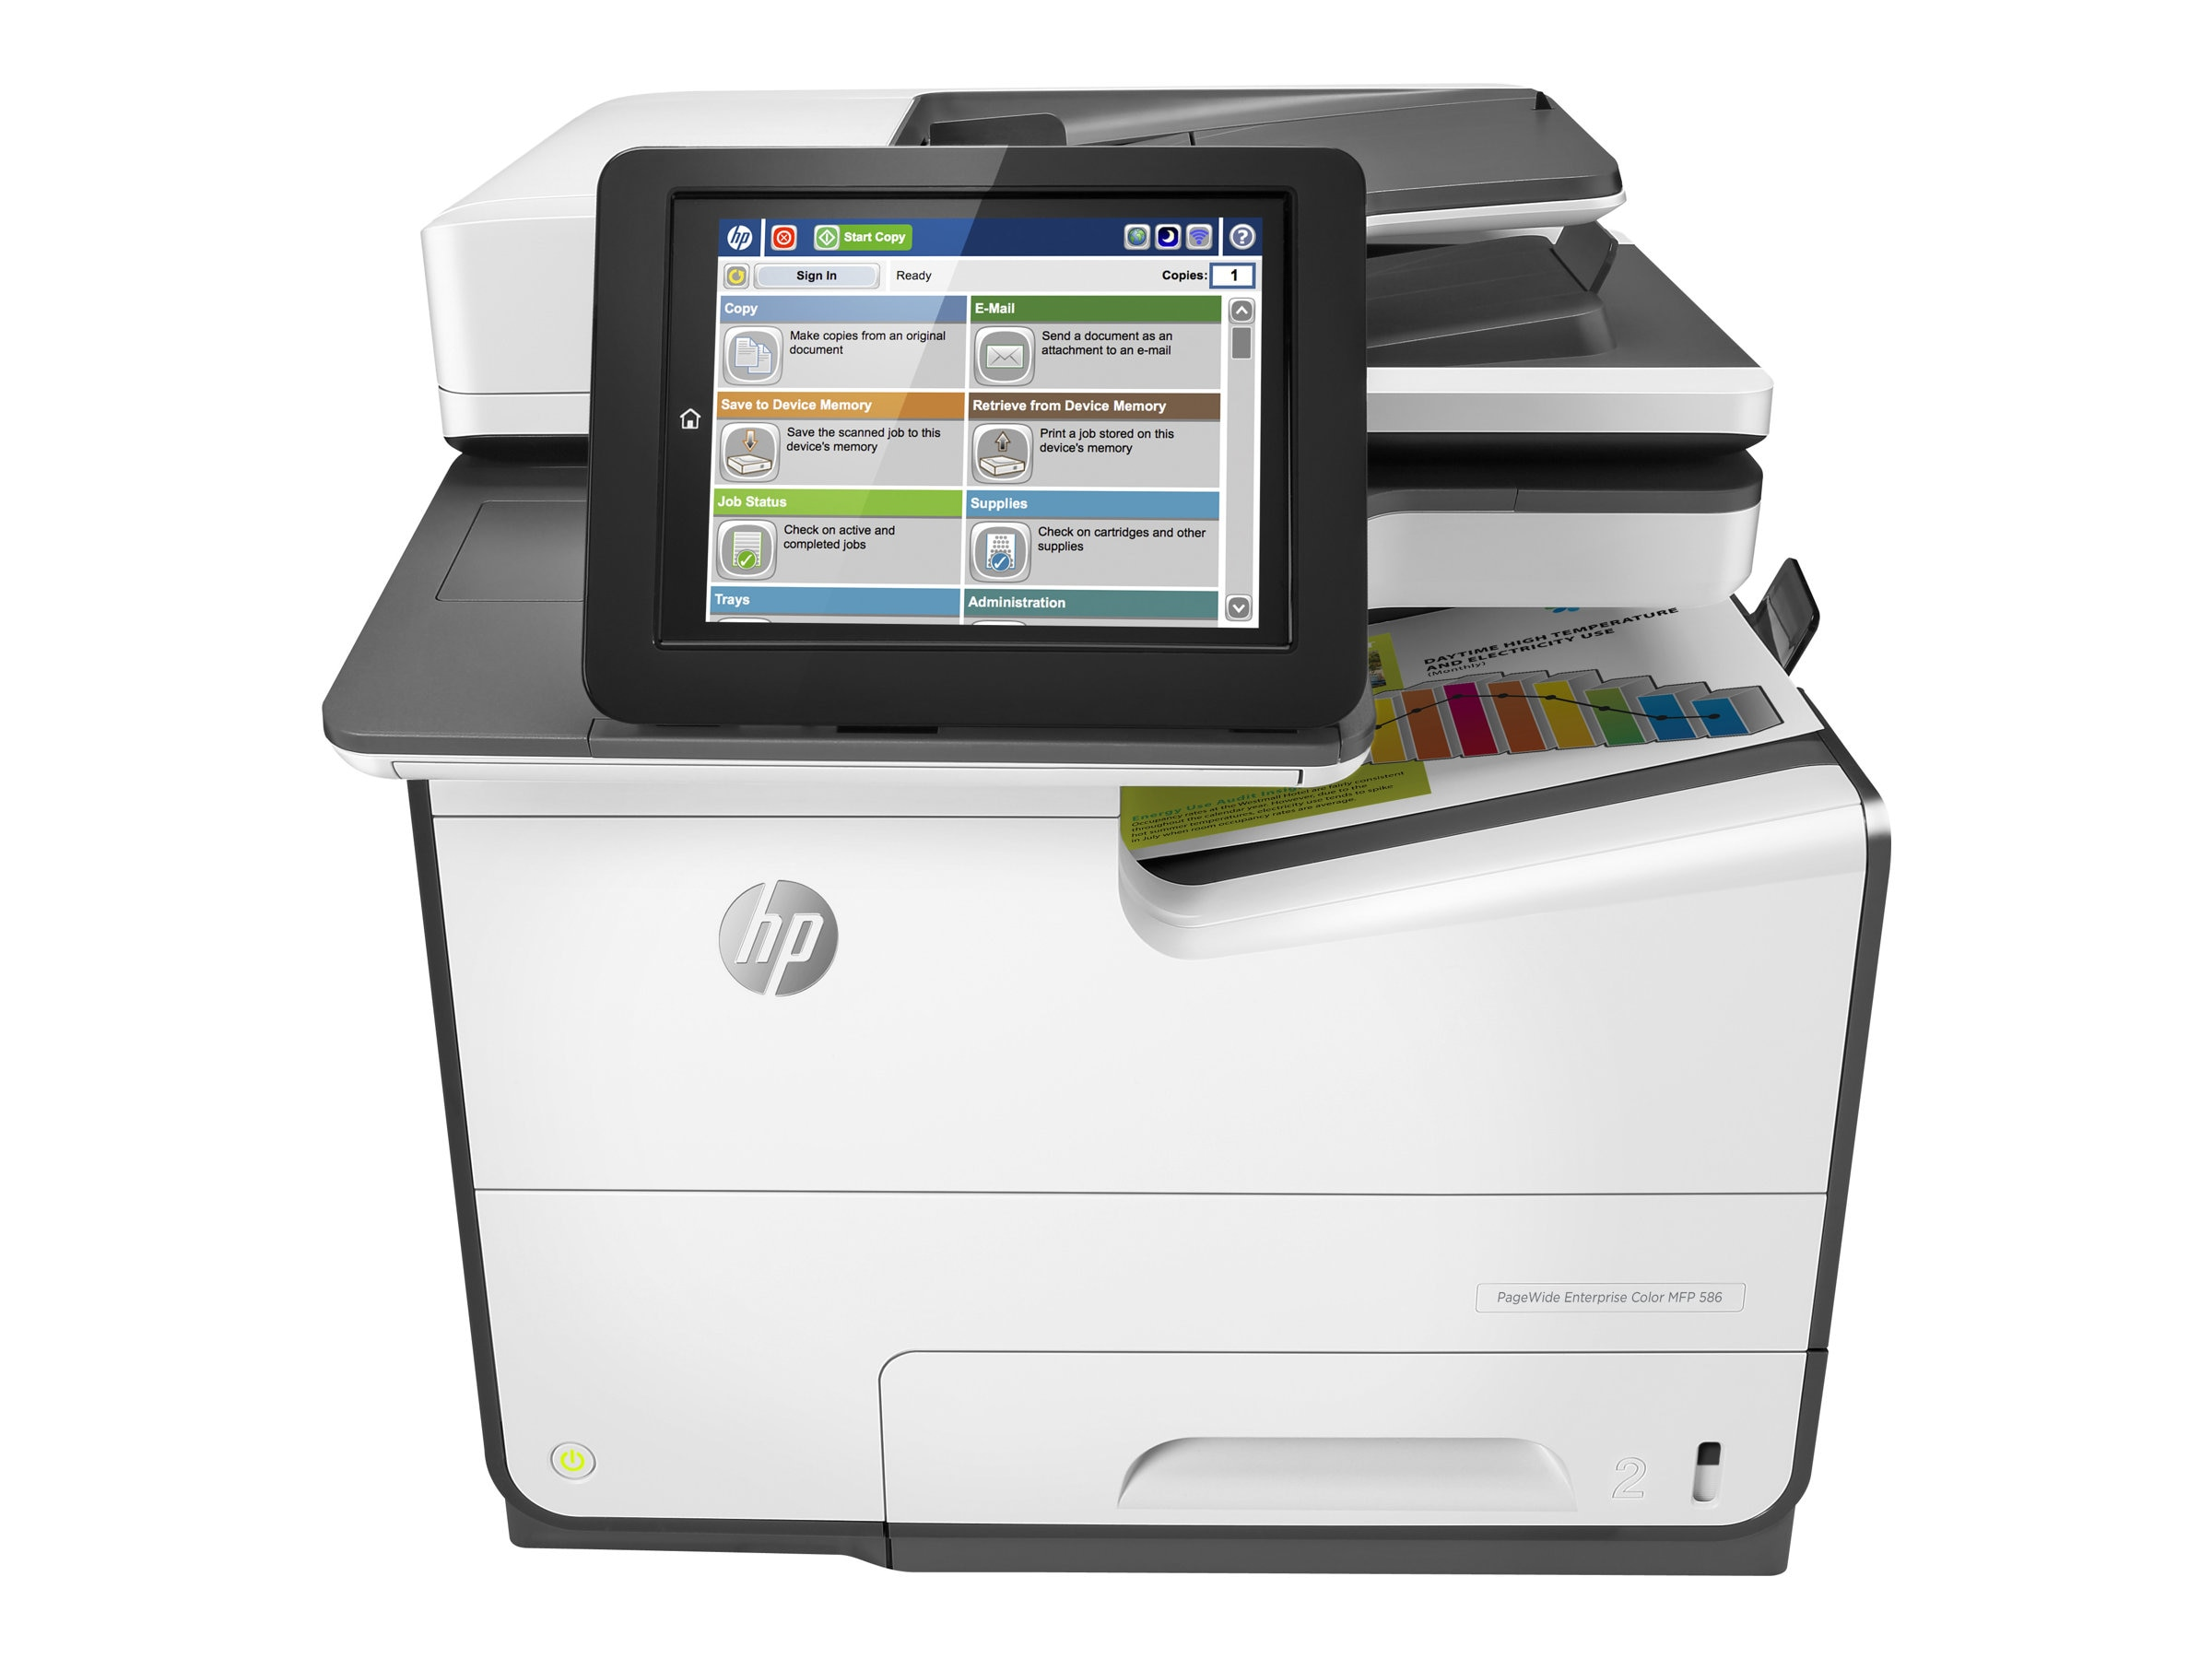 HP PageWide Enterprise Color MFP 586dn ($1,999 - $600 Instant Rebate = $$1,399 Expires 02 28), G1W39A#BGJ